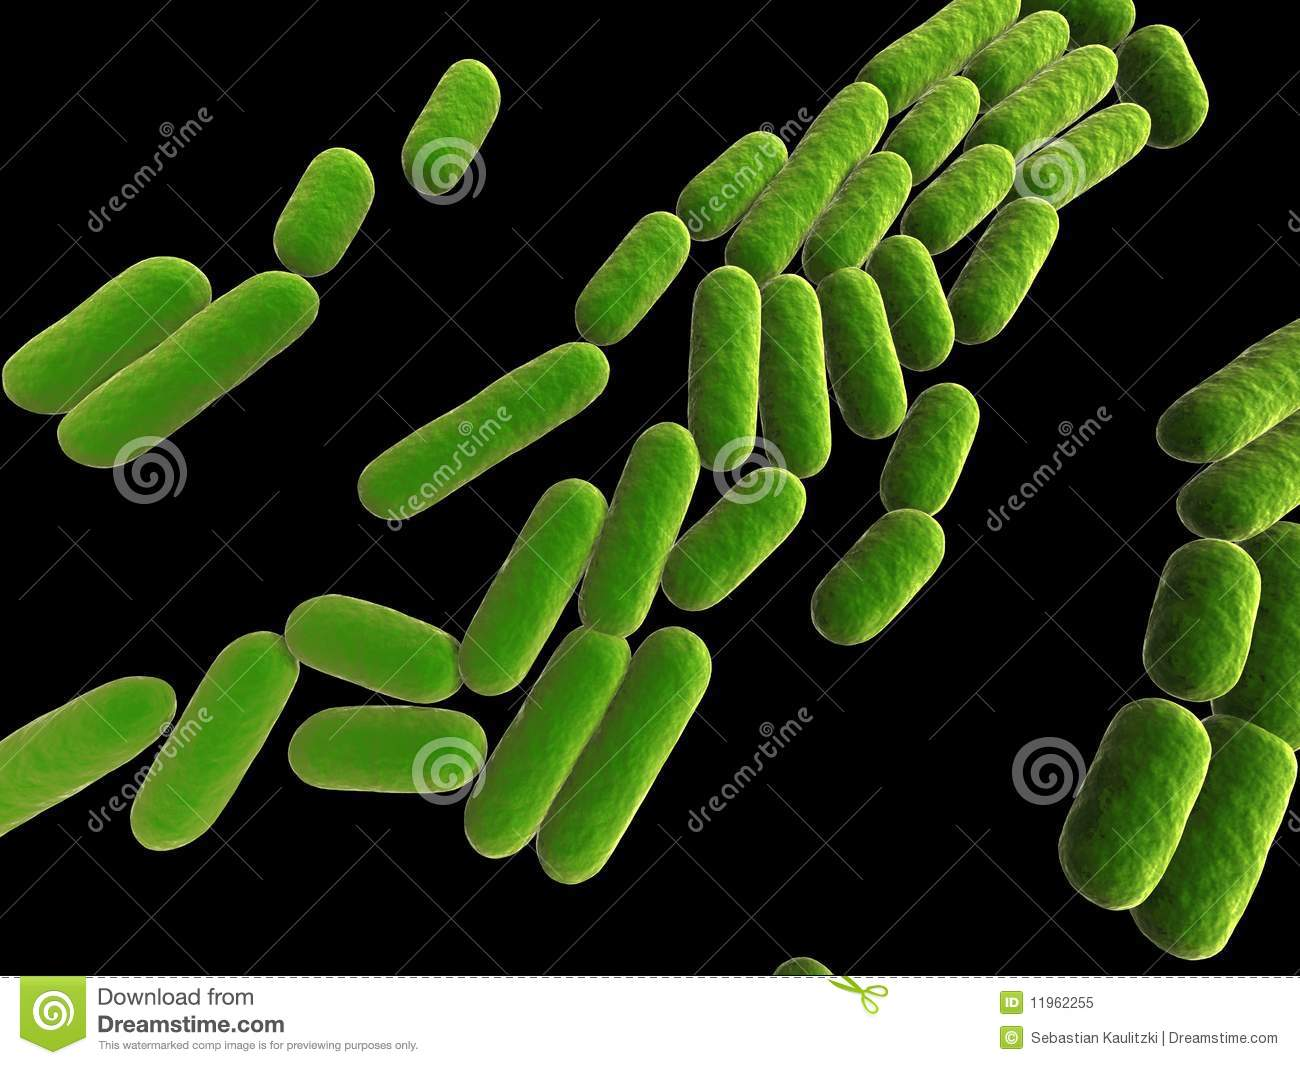 Bacillus Subtilis Royalty Free Stock Photo - Image: 11962255